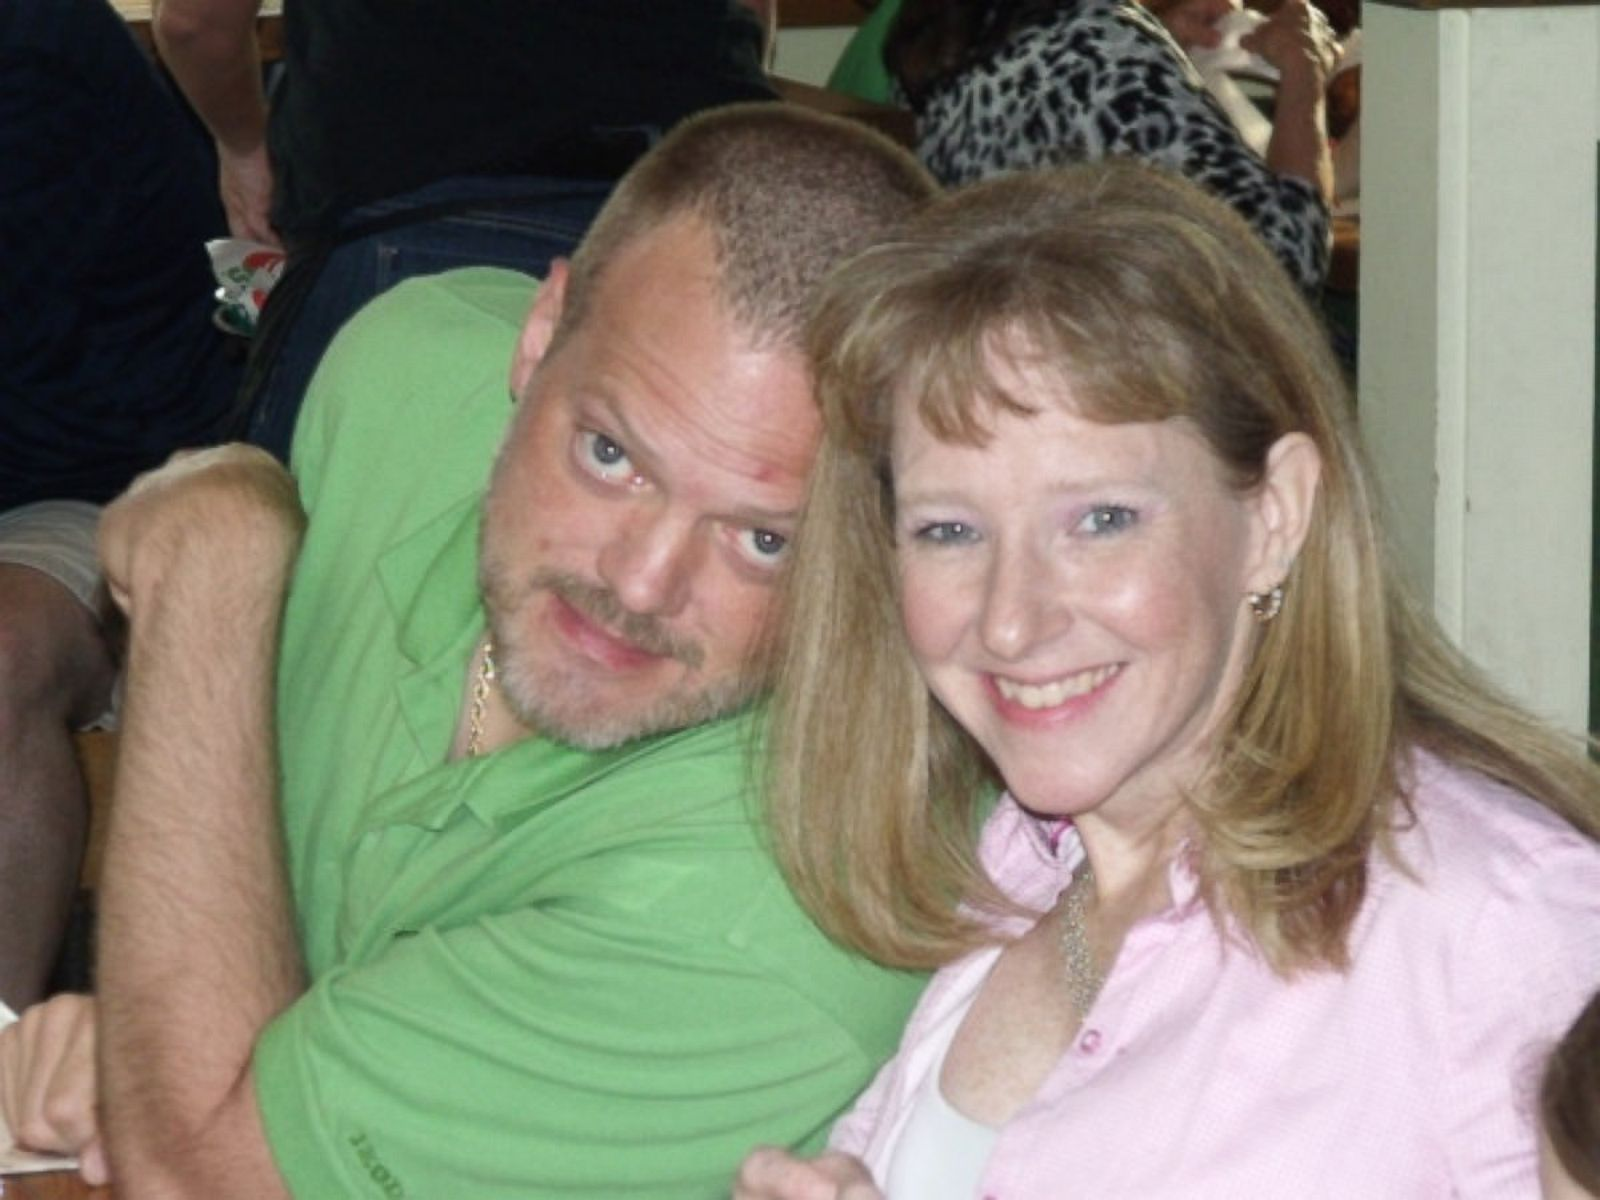 How This Georgia Man Almost Got Away With His Wife's Murder